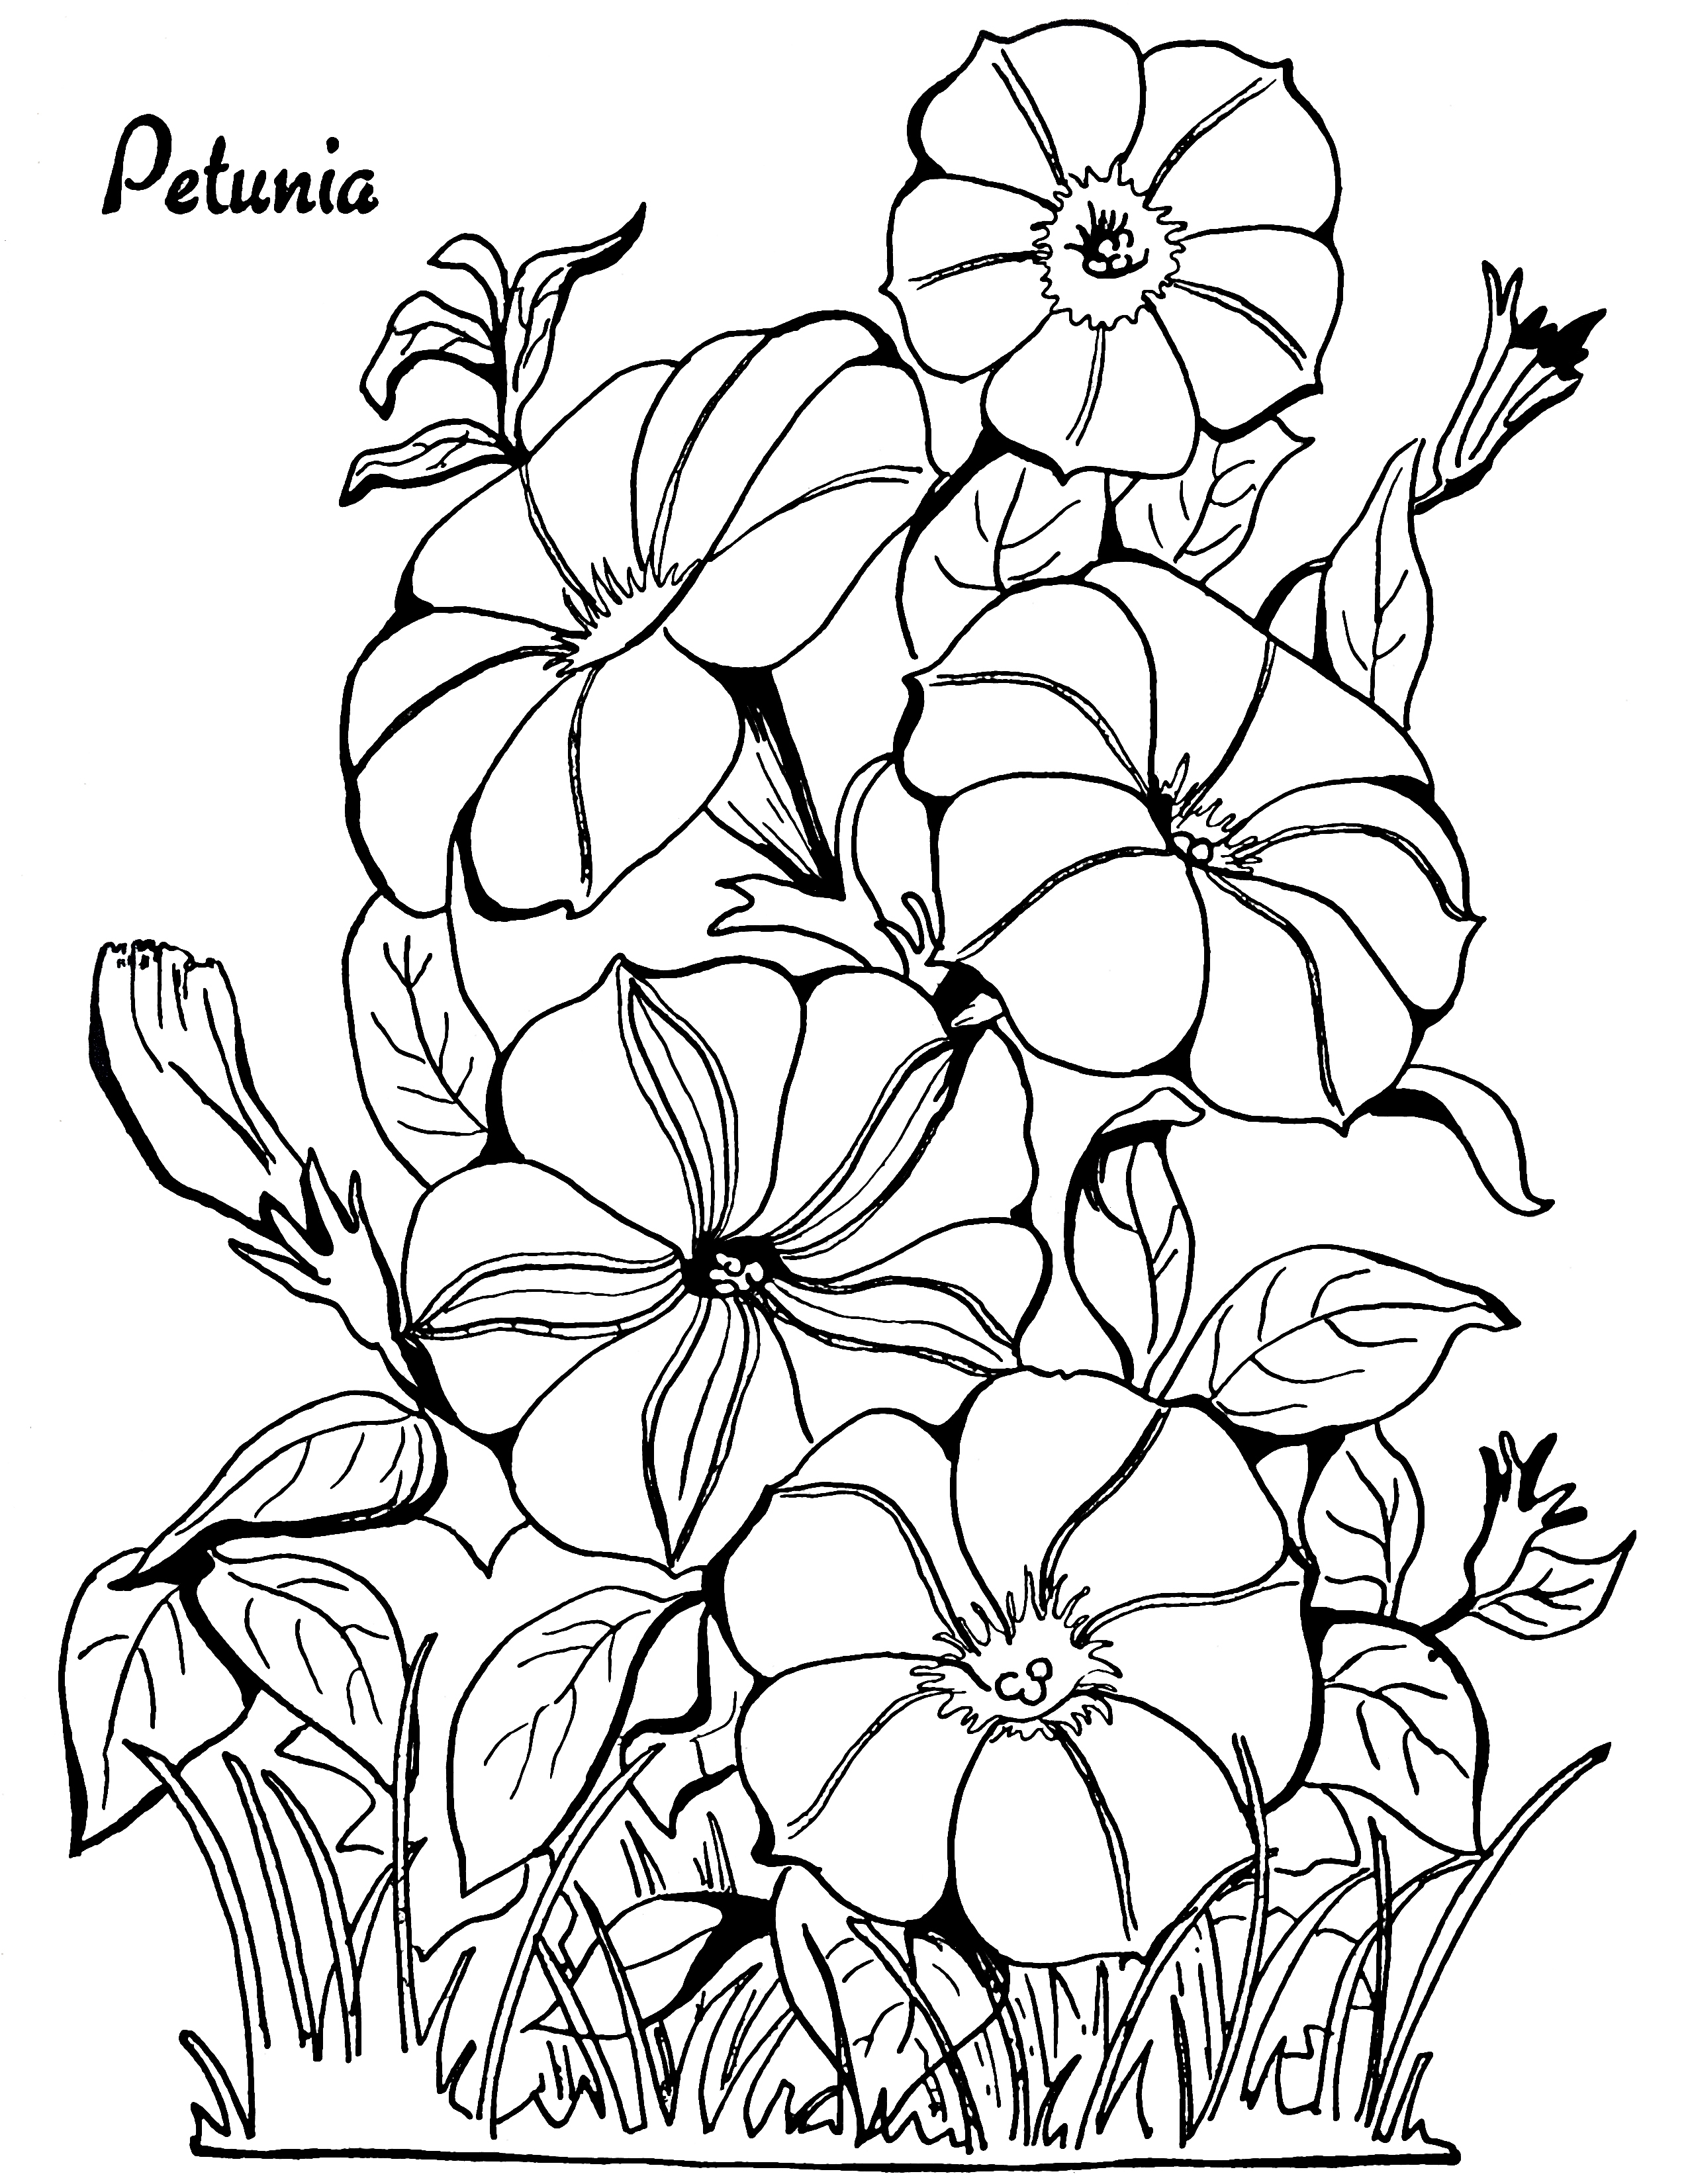 Petunia clipart black and white Adult Fairy Page Page Petunias